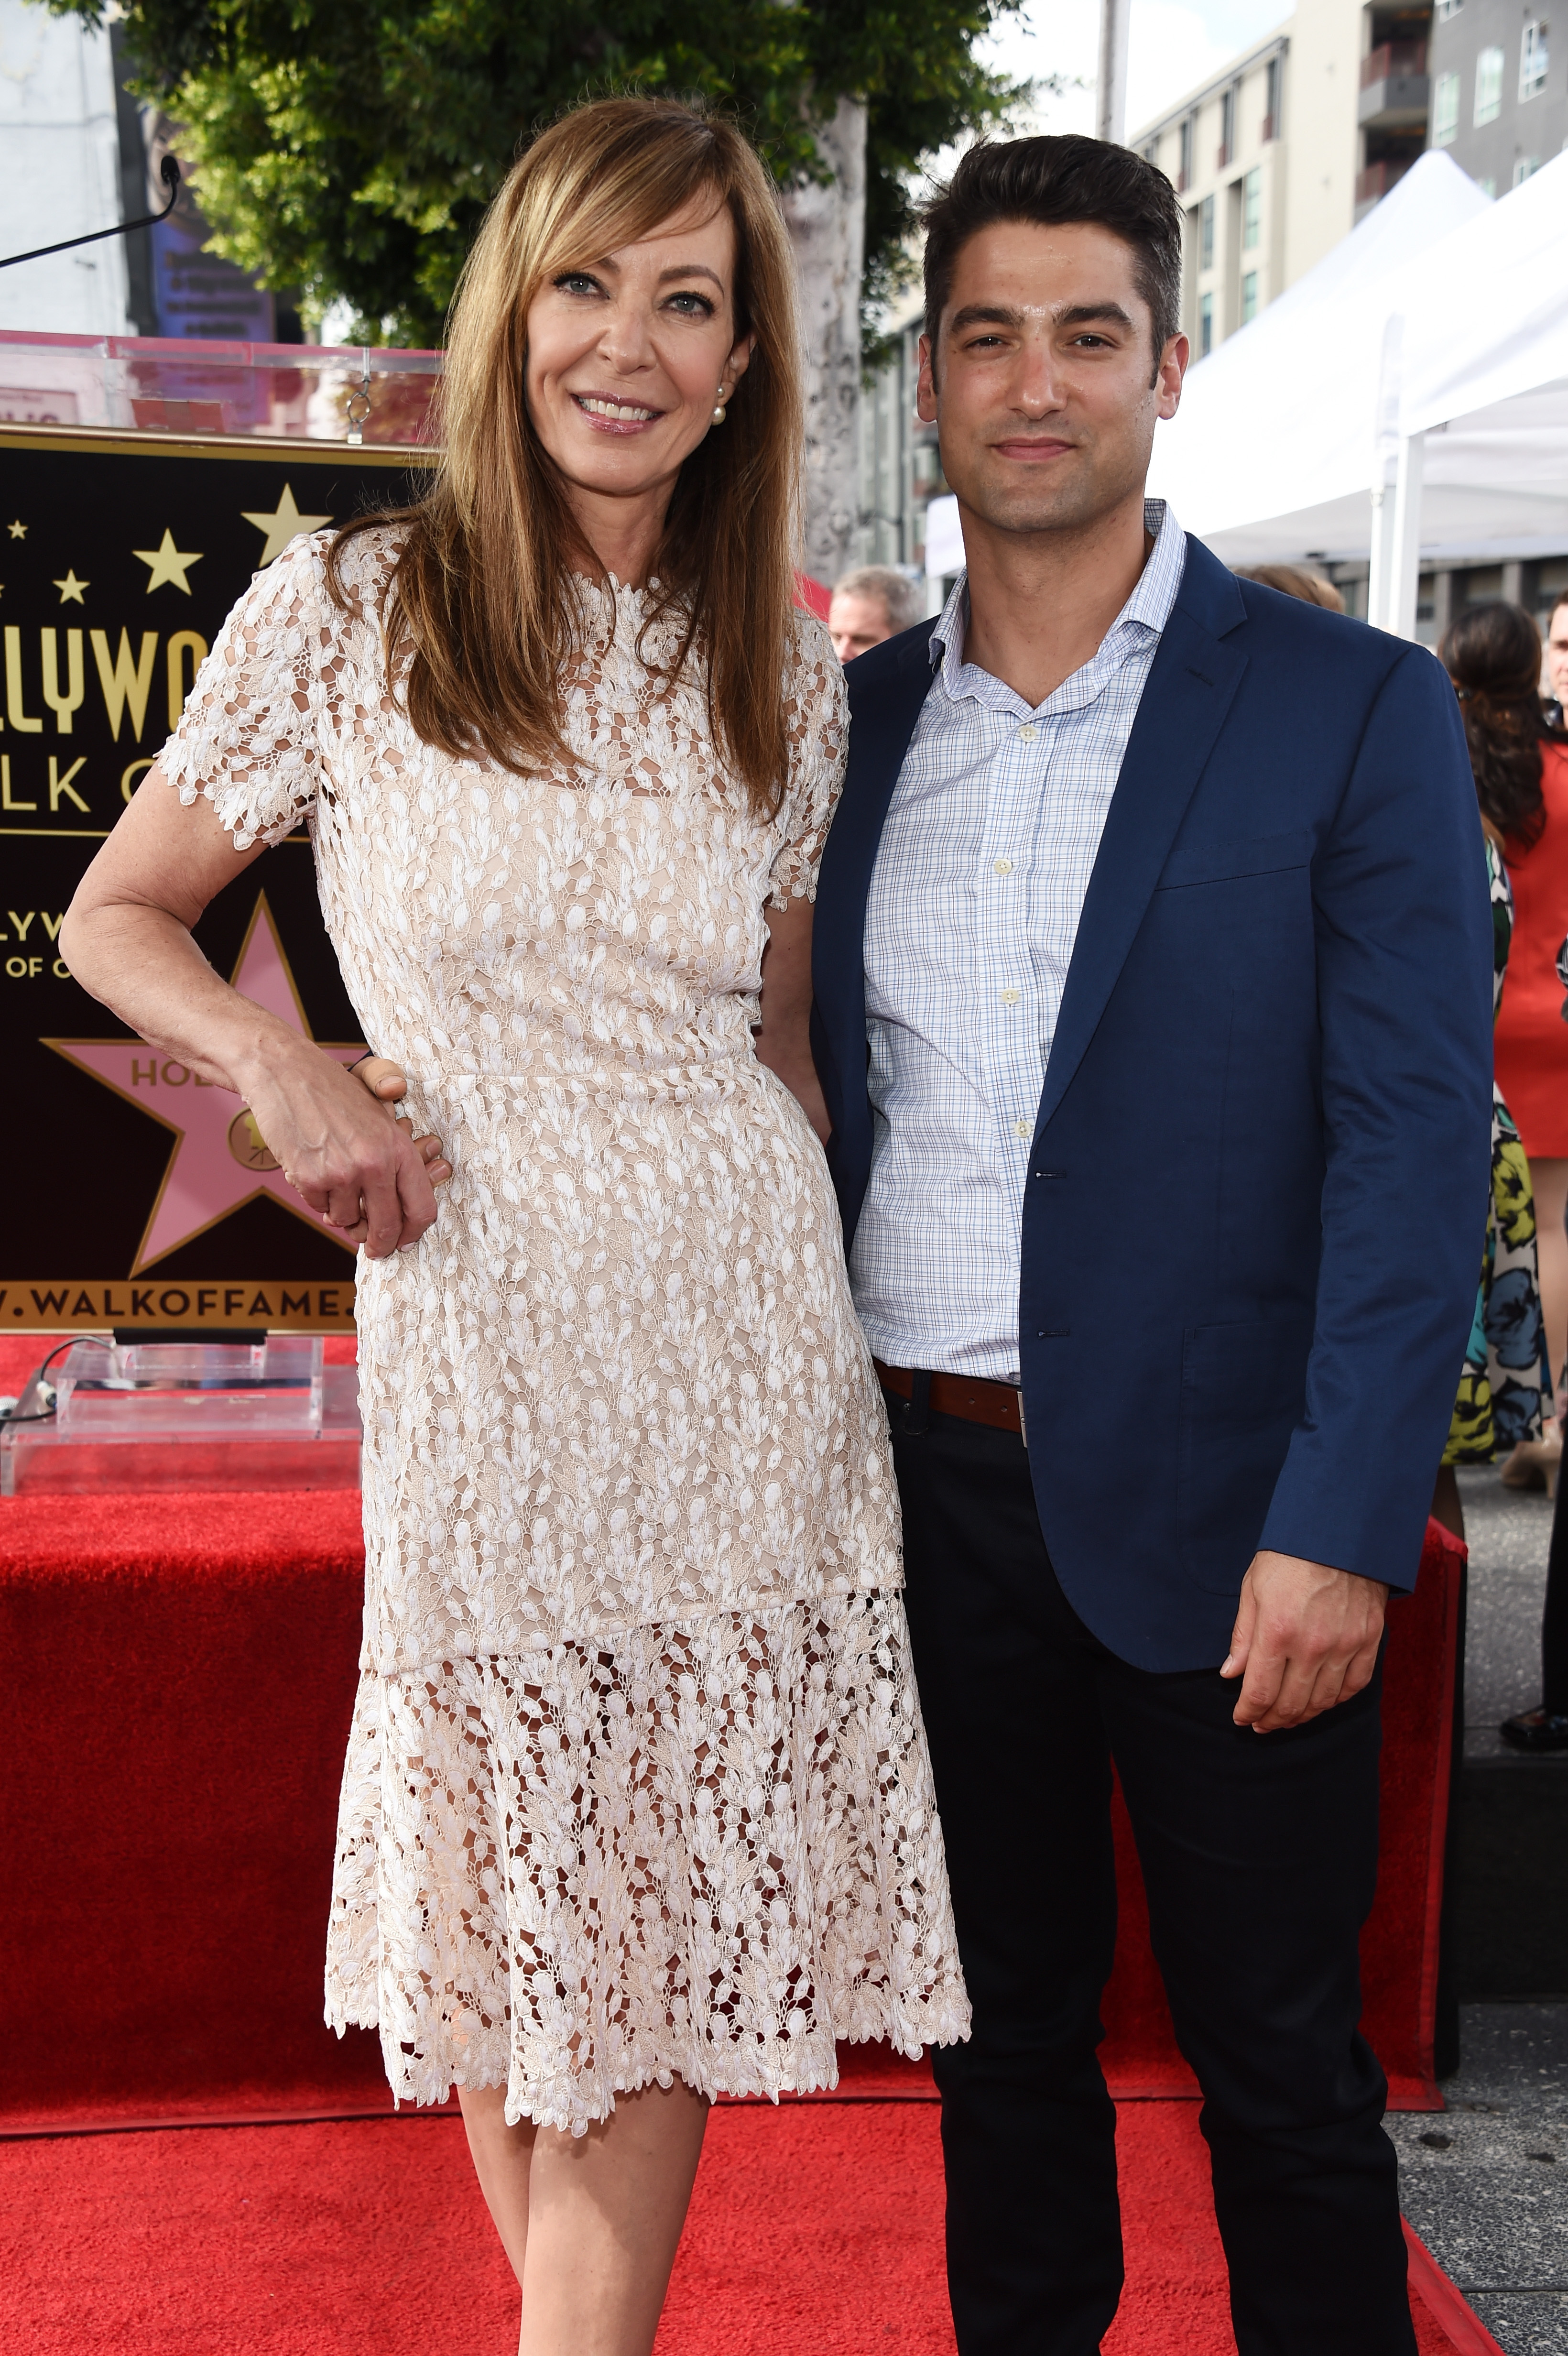 Actress Allison Janney and Philip Joncas attend Janney's Star ceremony on The Hollywood Walk of Fame in Hollywood, California on Oct. 17, 2016.